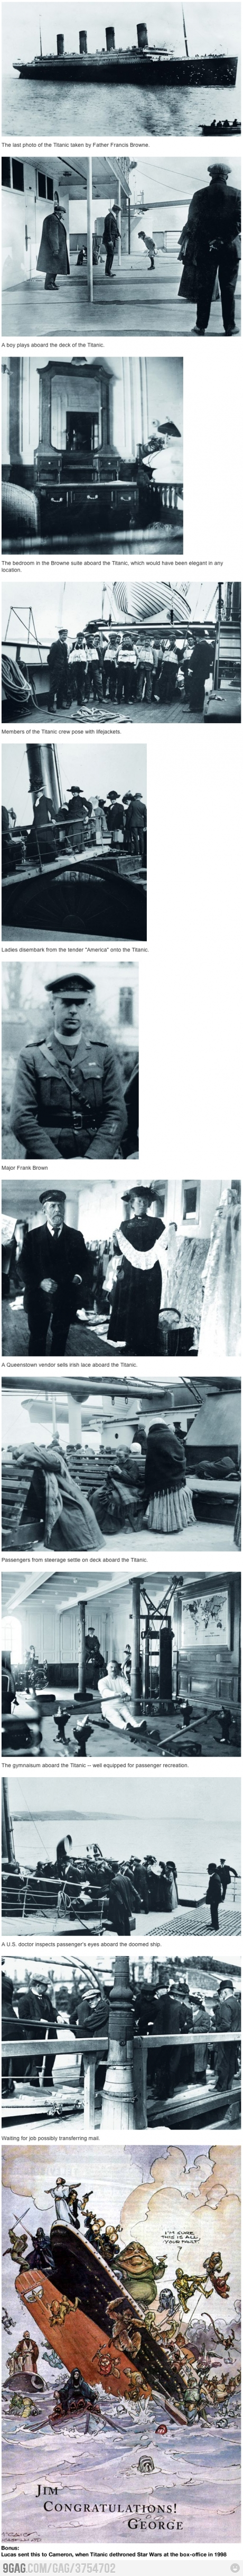 Some Pictures Of The Titanic You\'ve Never Seen | Things for My Wall ...